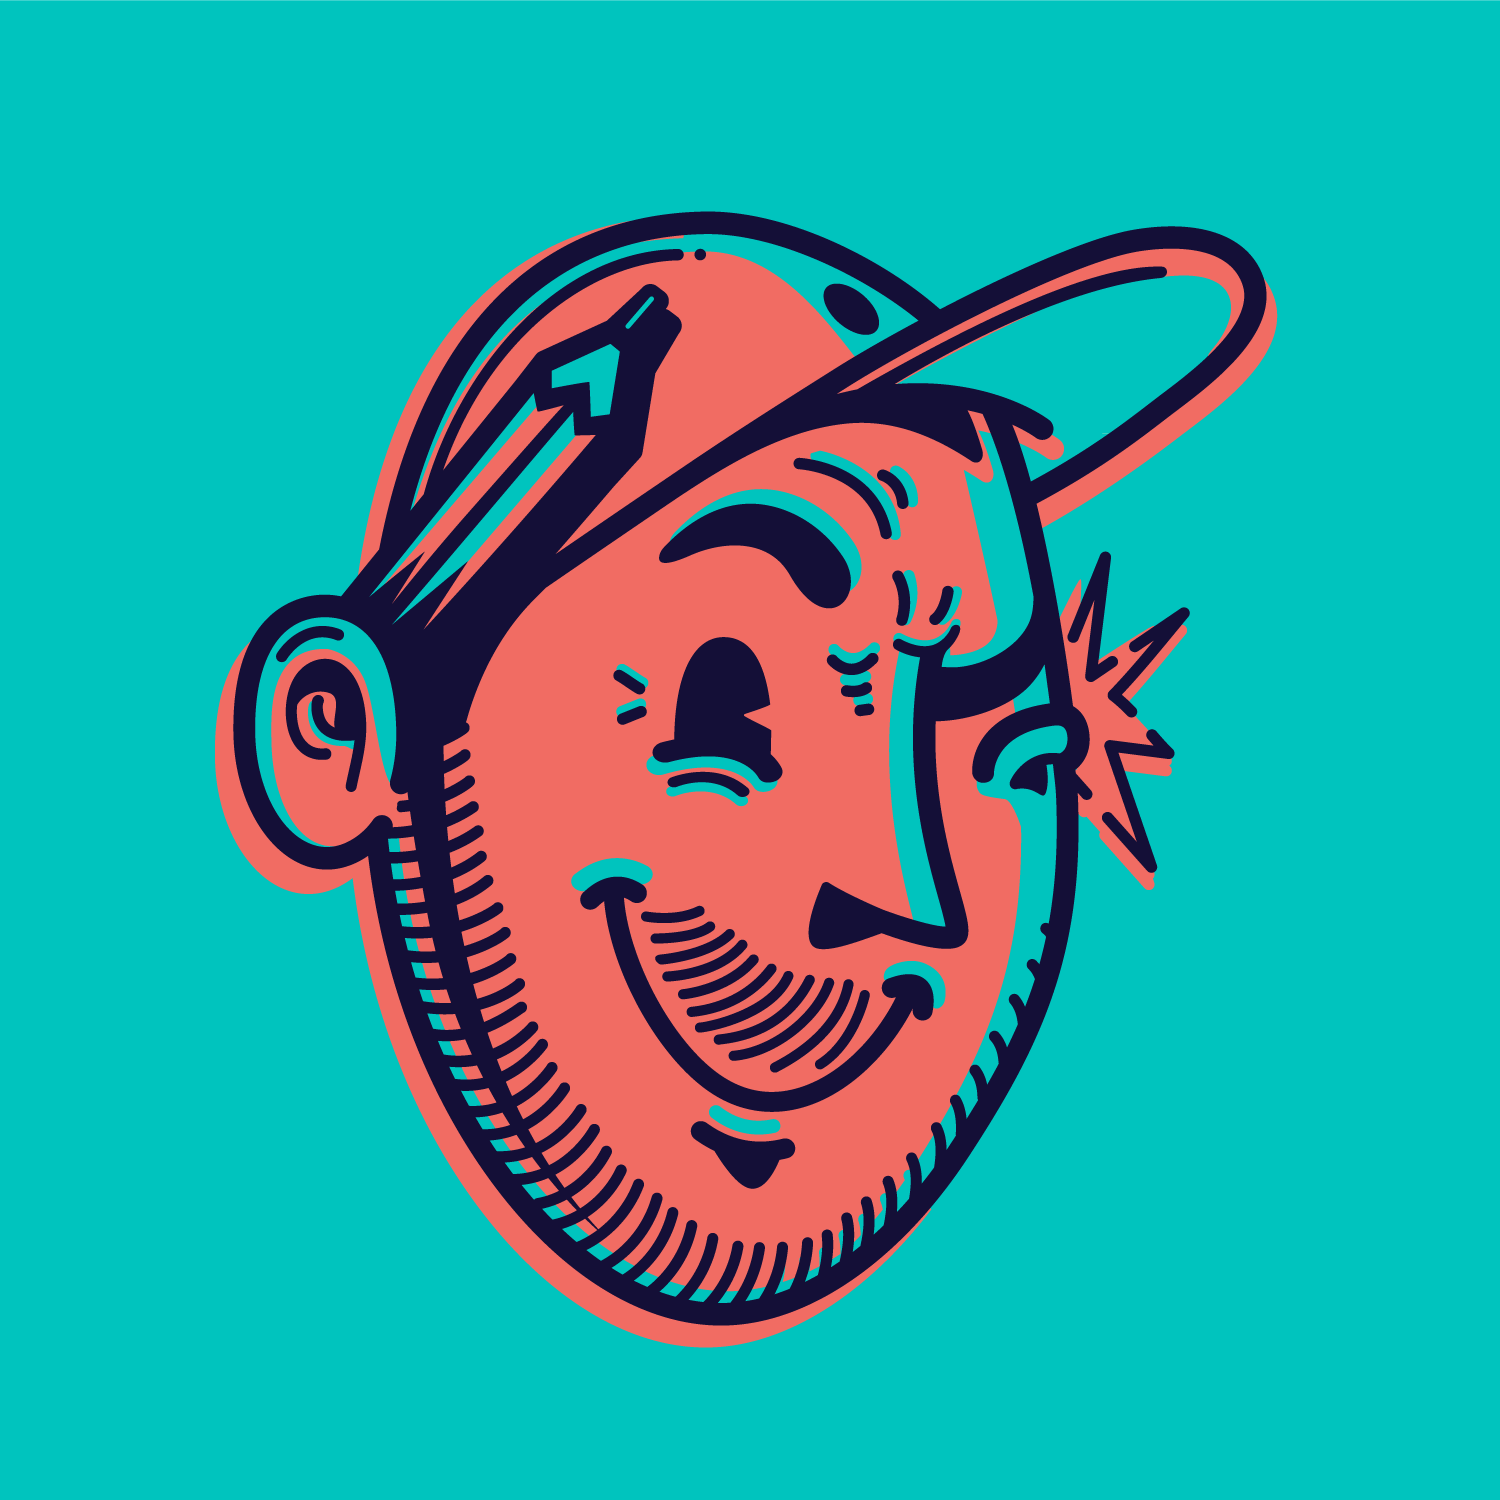 mike-the-illustrator-logo.png